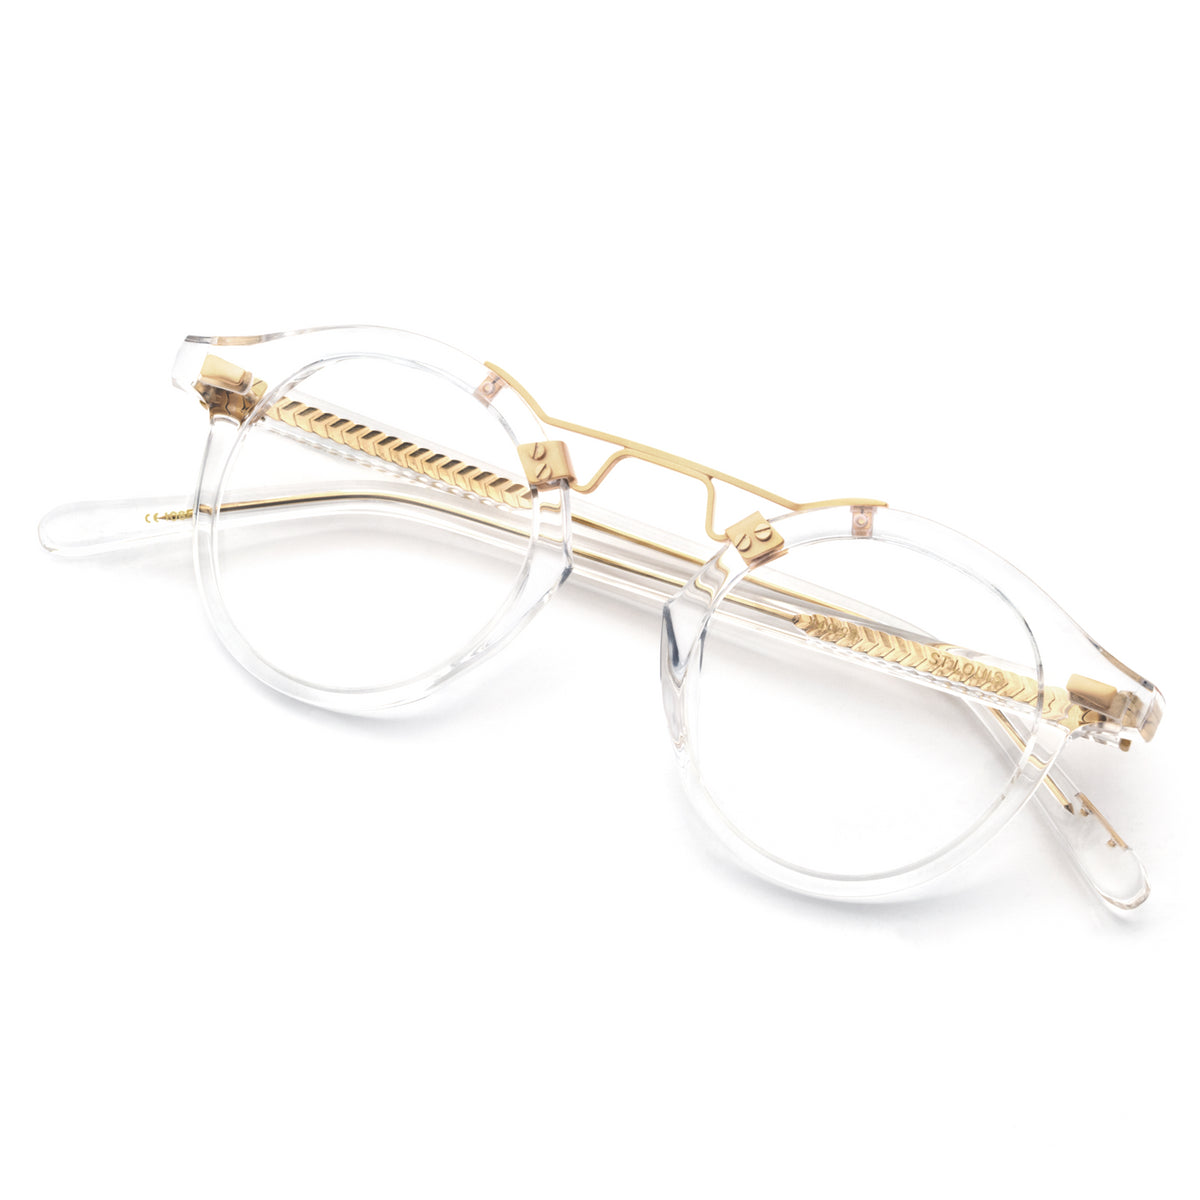 ST. LOUIS OPTICAL | Crystal 24K handcrafted acetate Optical